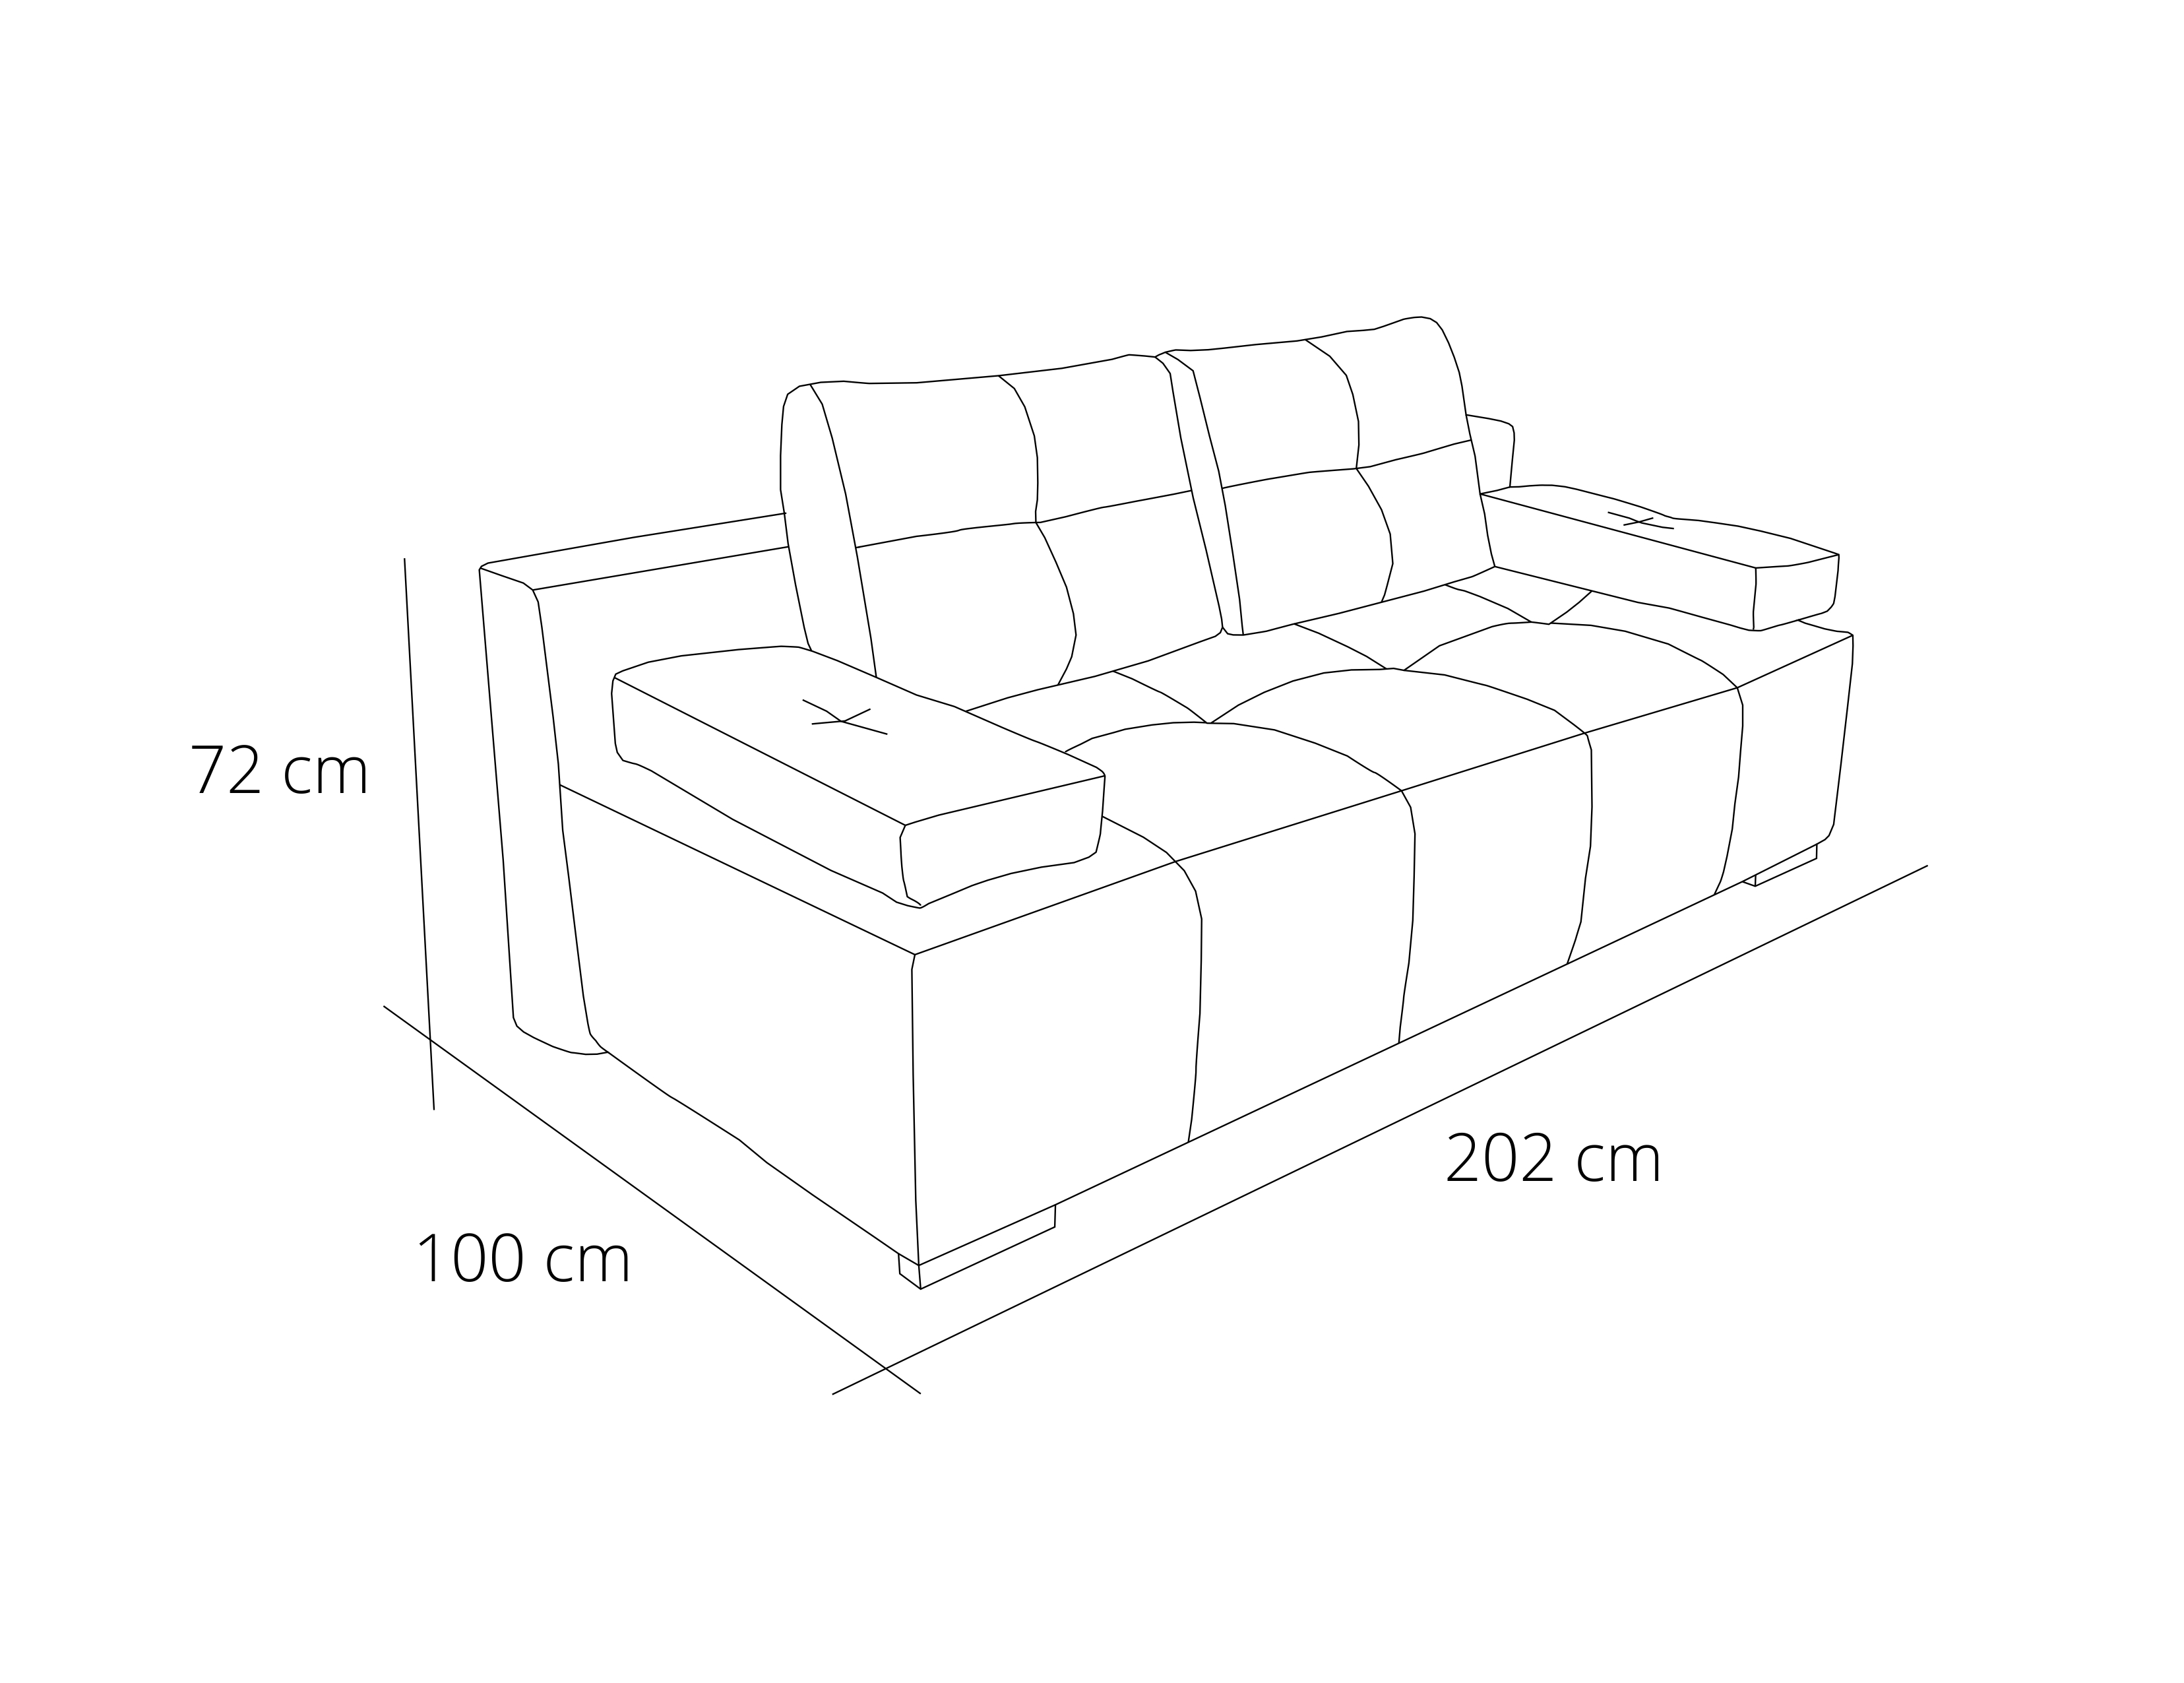 Polo couch schlaffunktion schlafsofa bettfunktion sofa ebay for Sofa bettfunktion